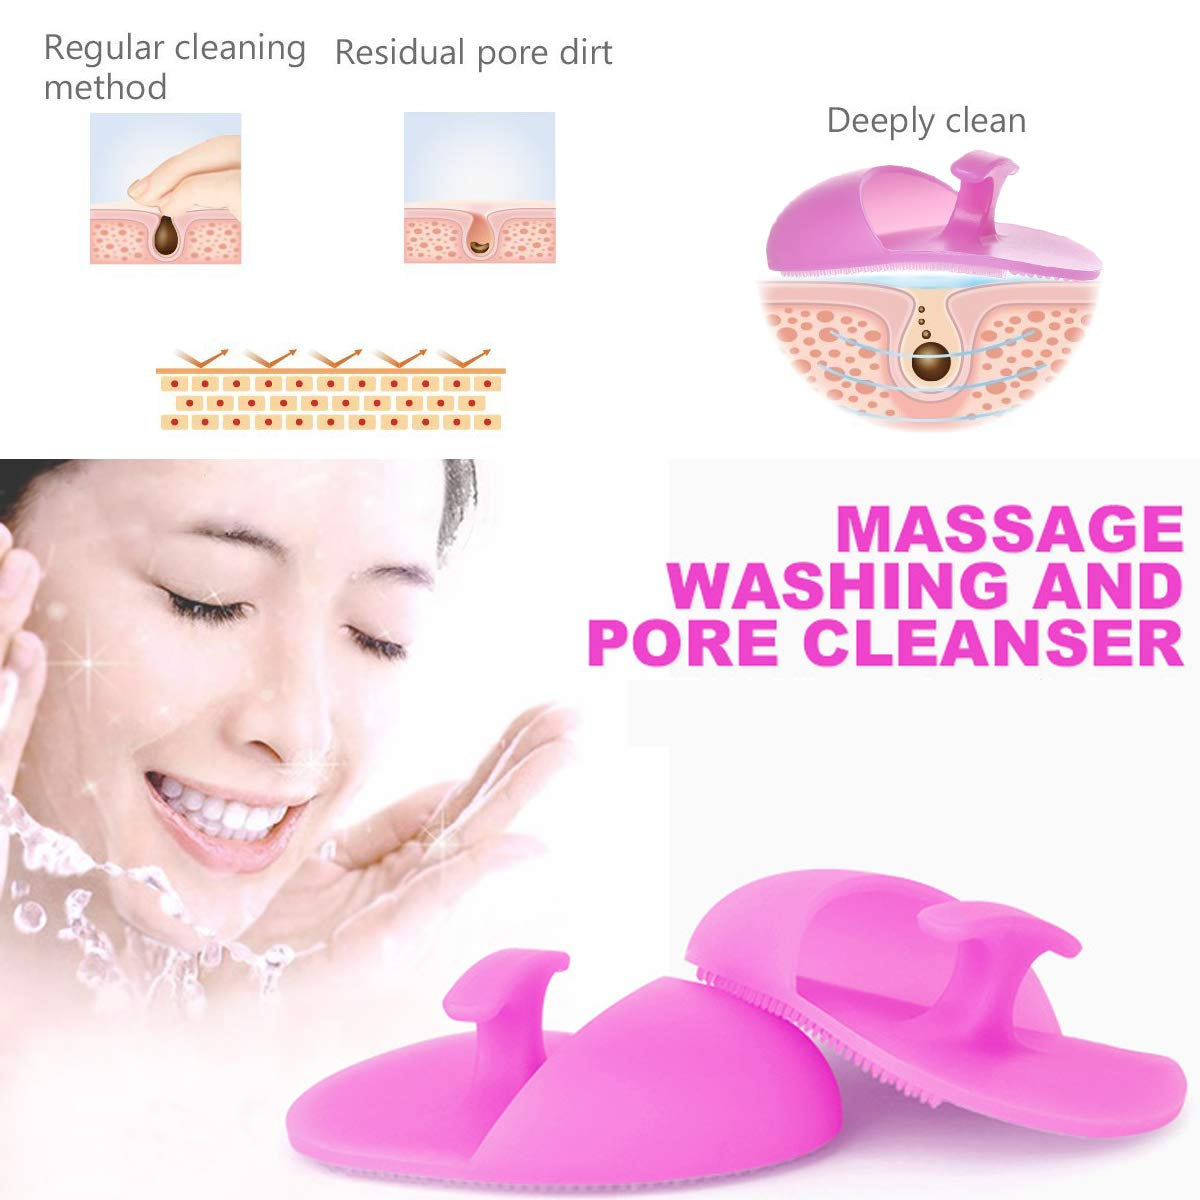 Silicone Face Scrubbers Exfoliator Brush,Facial Cleansing Brush Pad Blackhead Scrubber Exfoliating Brush Face Cleanser Brush Manual Facial Cleansing Brush Acne Blackheads Removing (4 Mix Color): Beauty